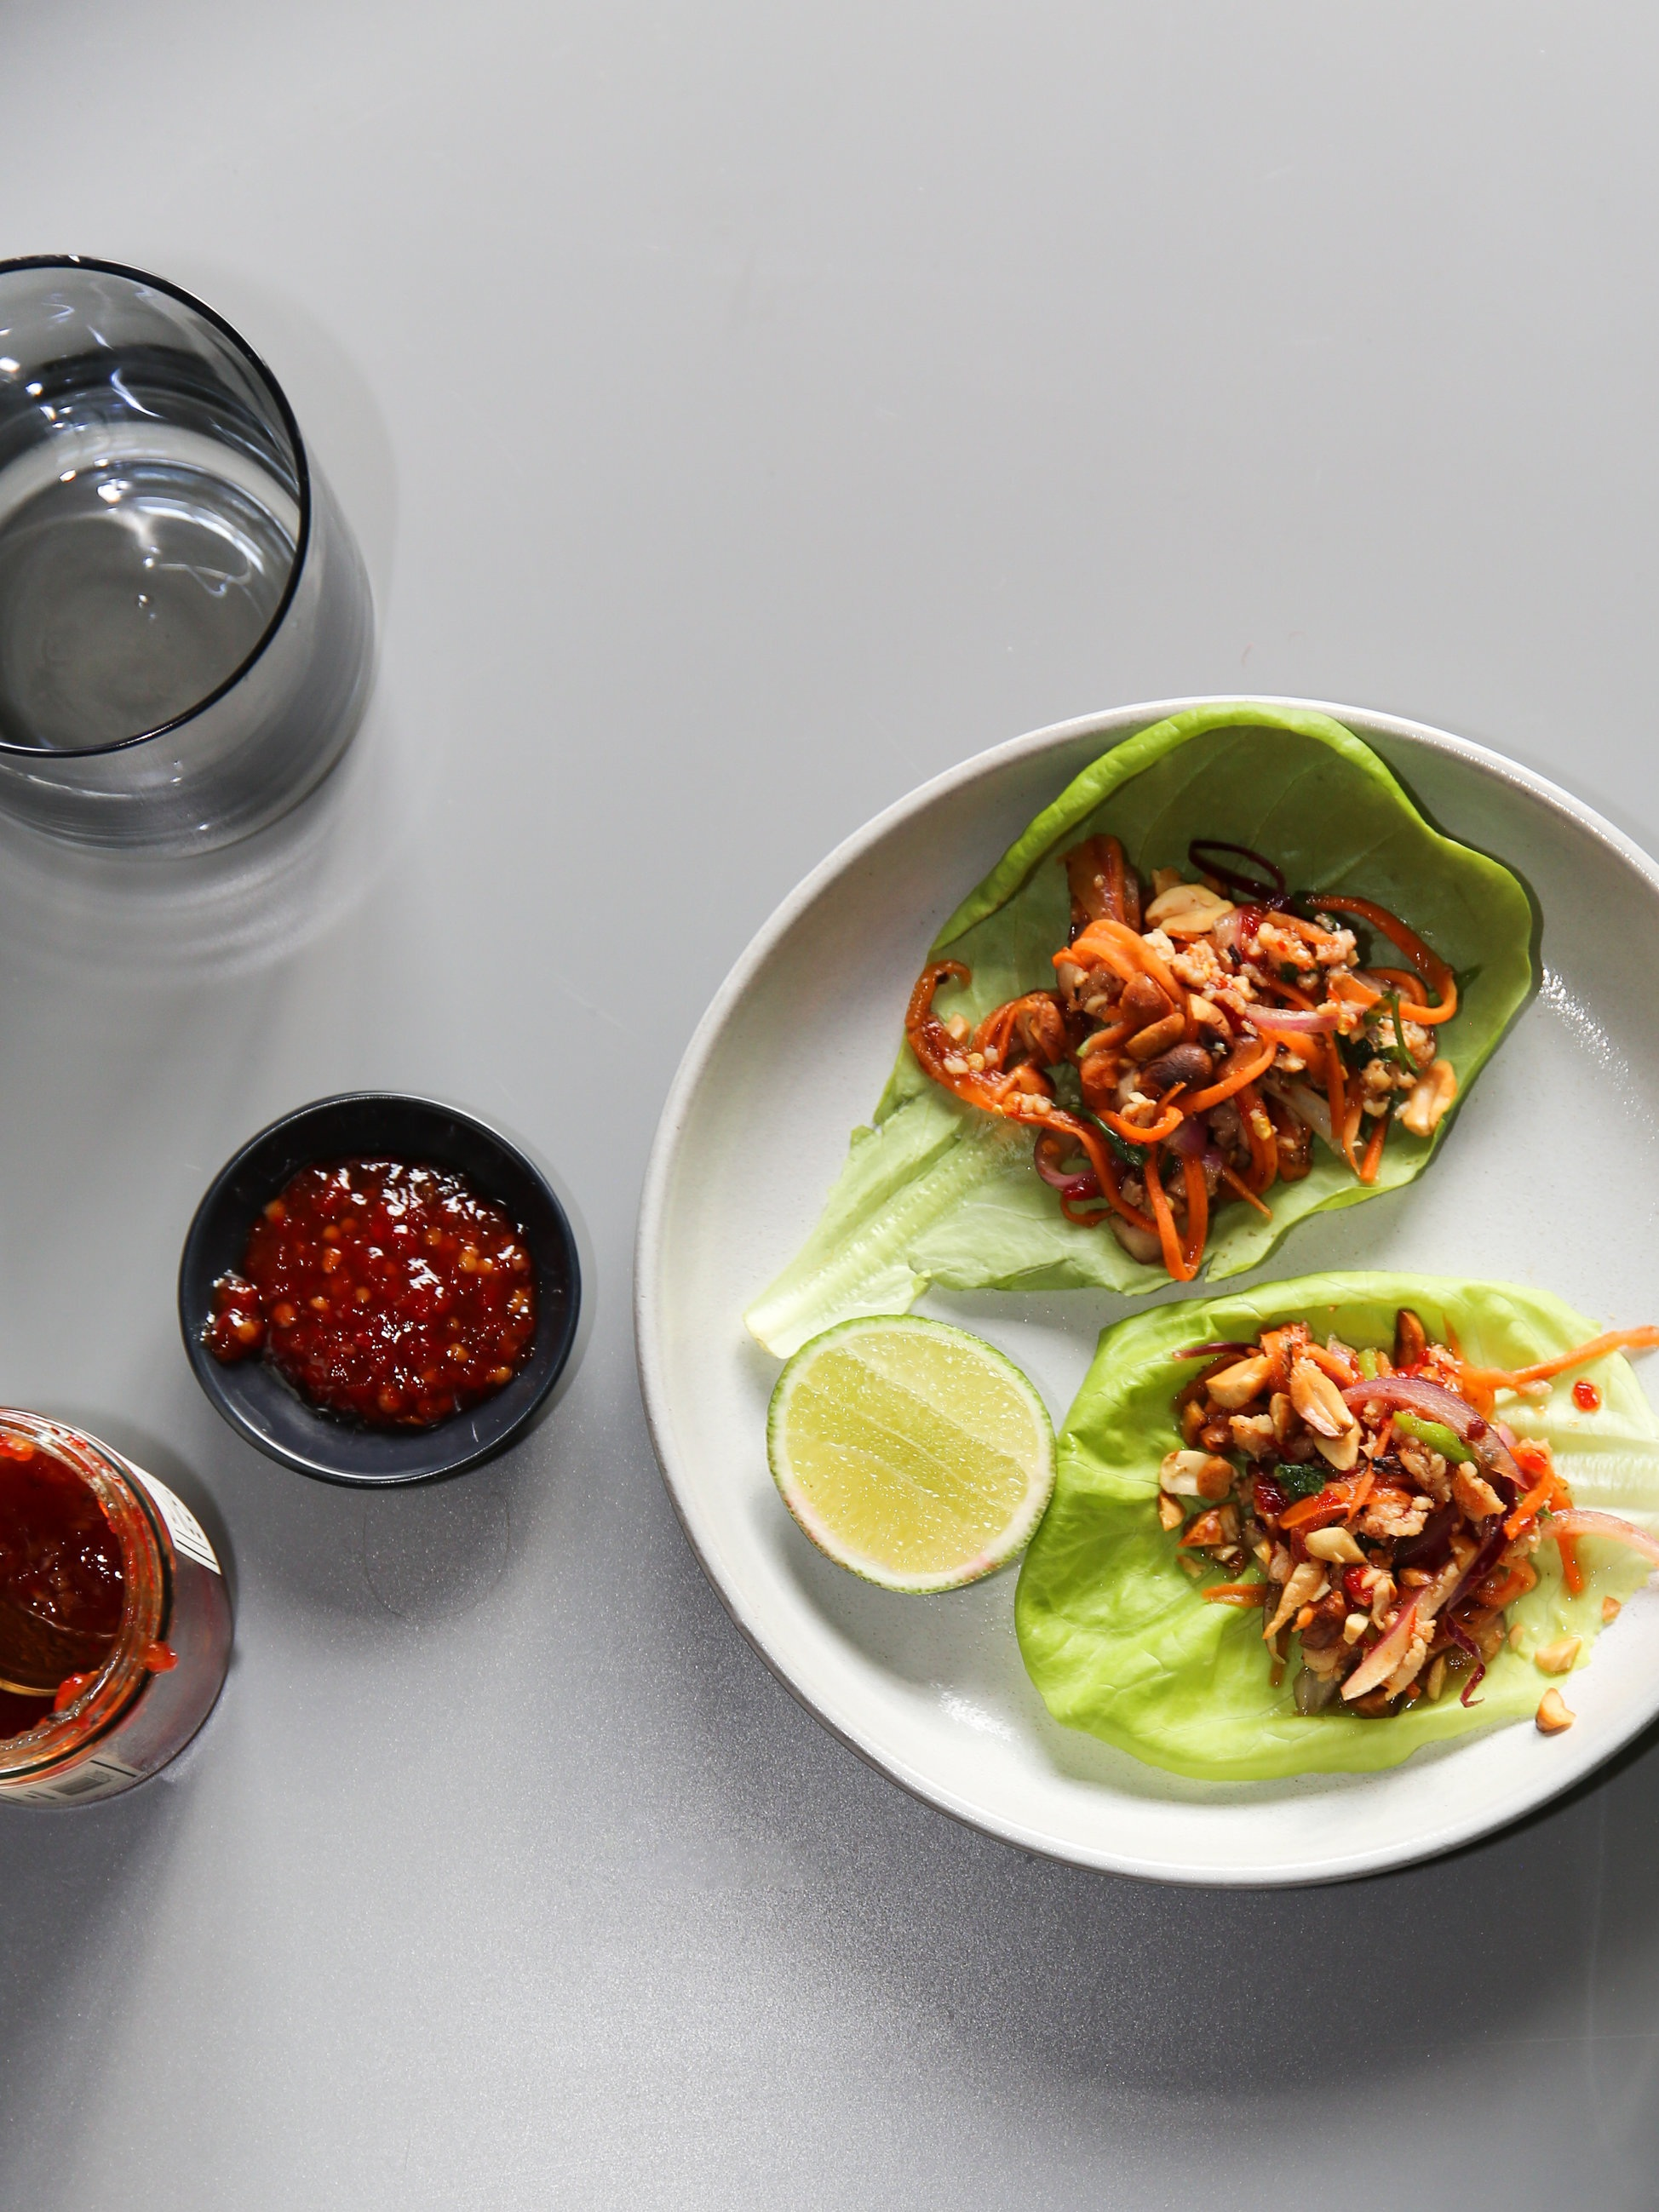 - This is our favorite go to gluten free dish & made with our Chili Pepper Jam too! Its ingredients list may look long but its quick, easy and we have yet to meet anyone who doesn't fall in love instantly!